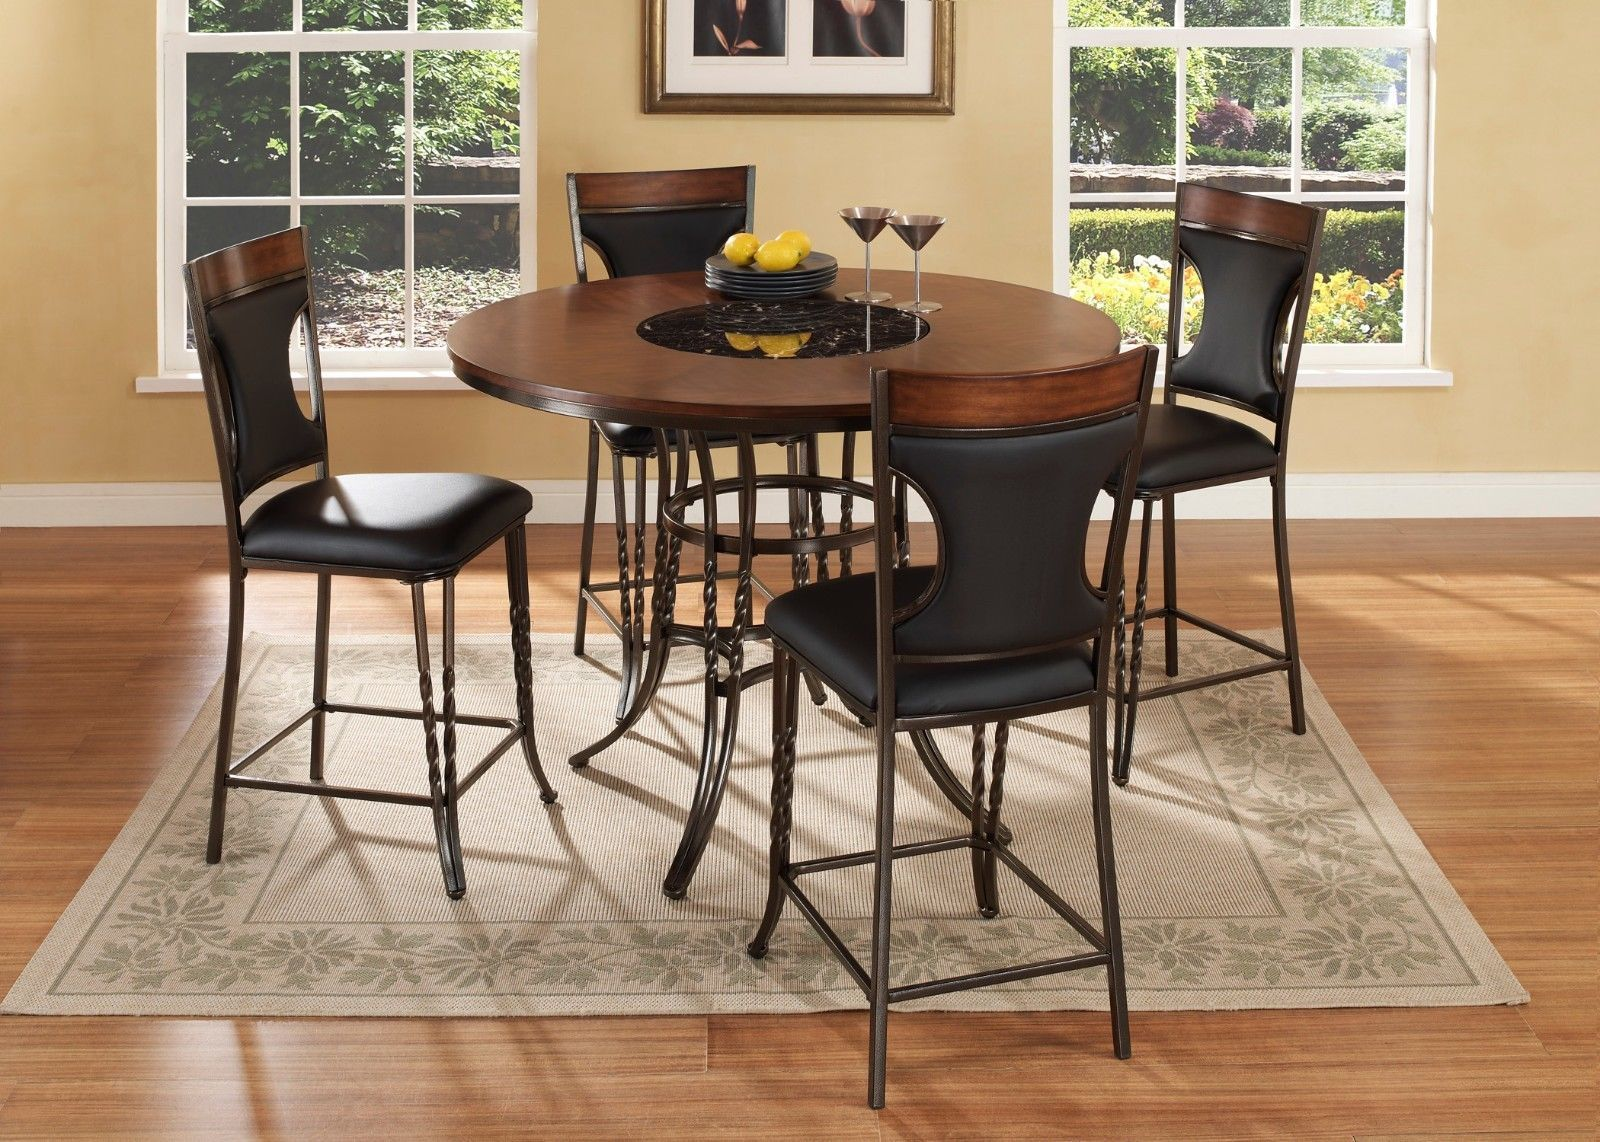 Mcferran DYNASTY Counter High Dining Room Table Chic Modern Style